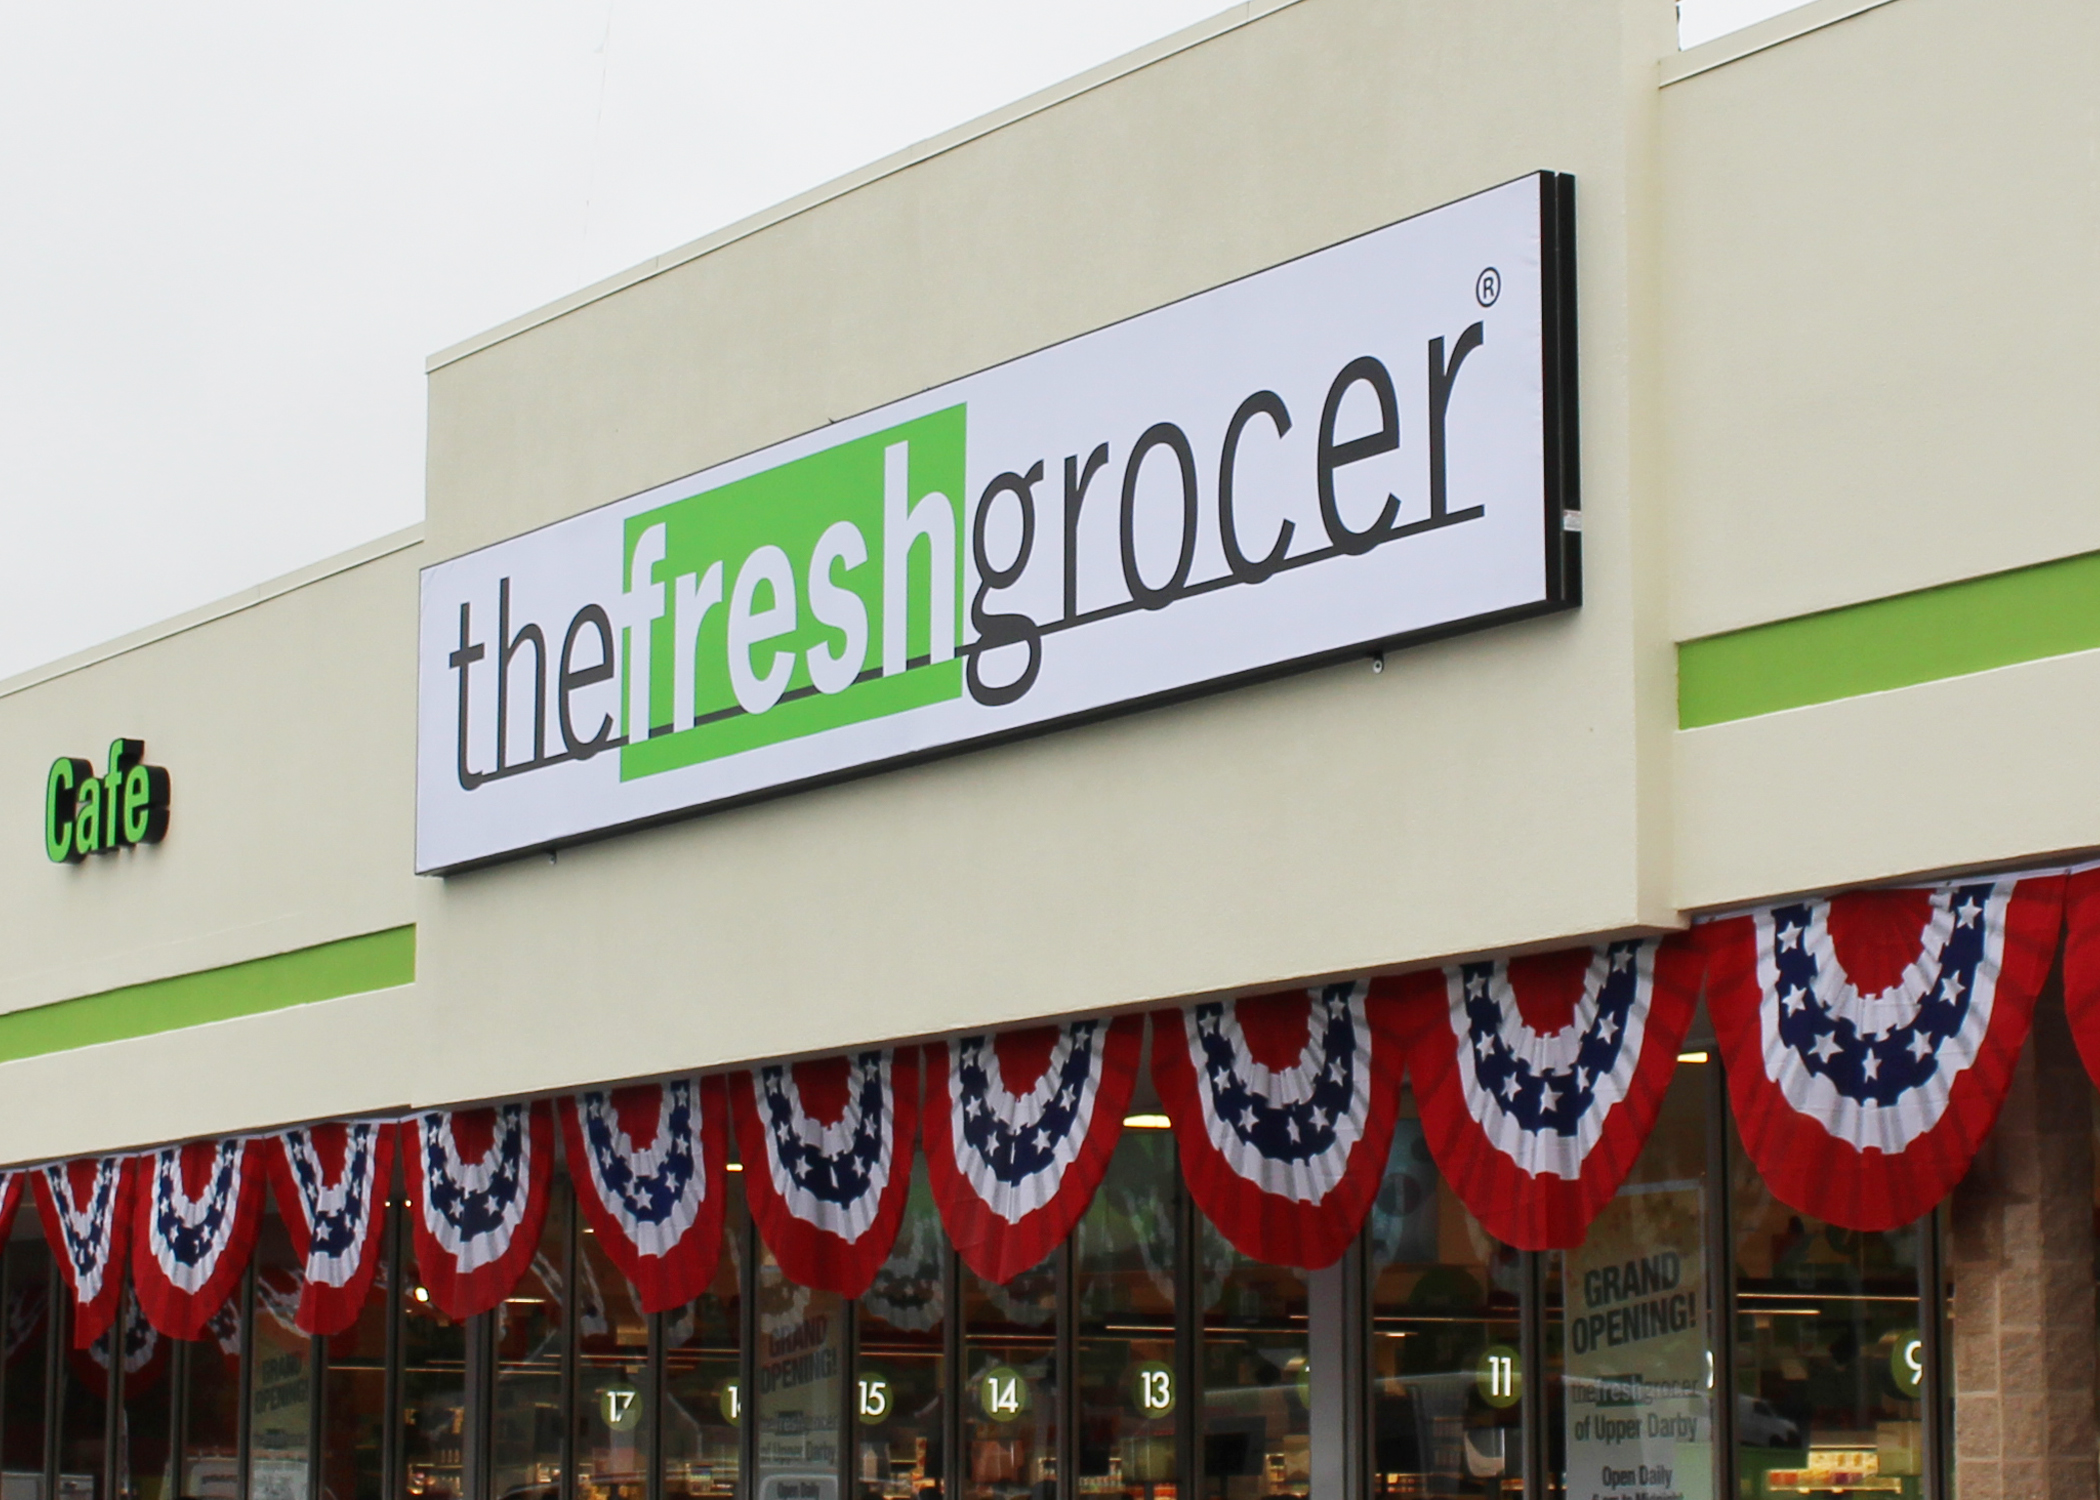 The Fresh Grocer building with large sign.